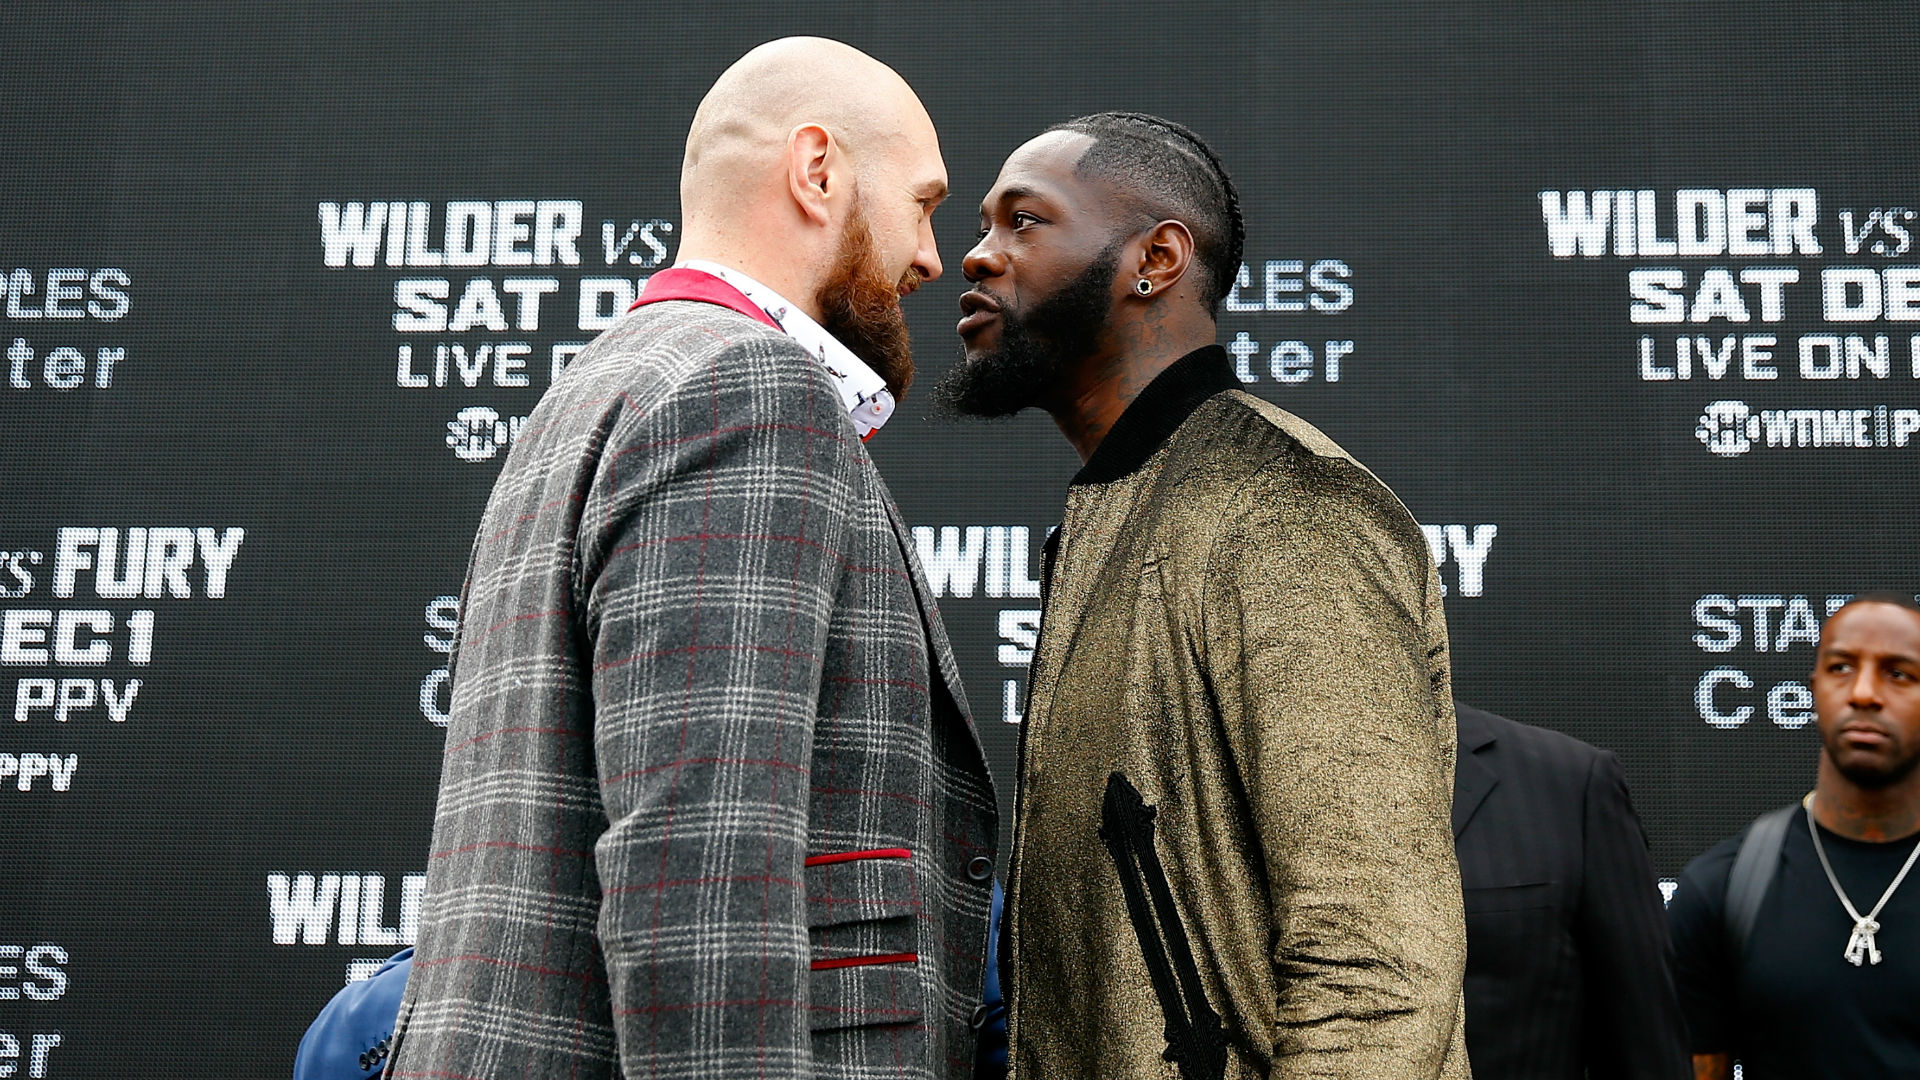 Deontay Wilder-Tyson Fury bout ends in a controversial draw